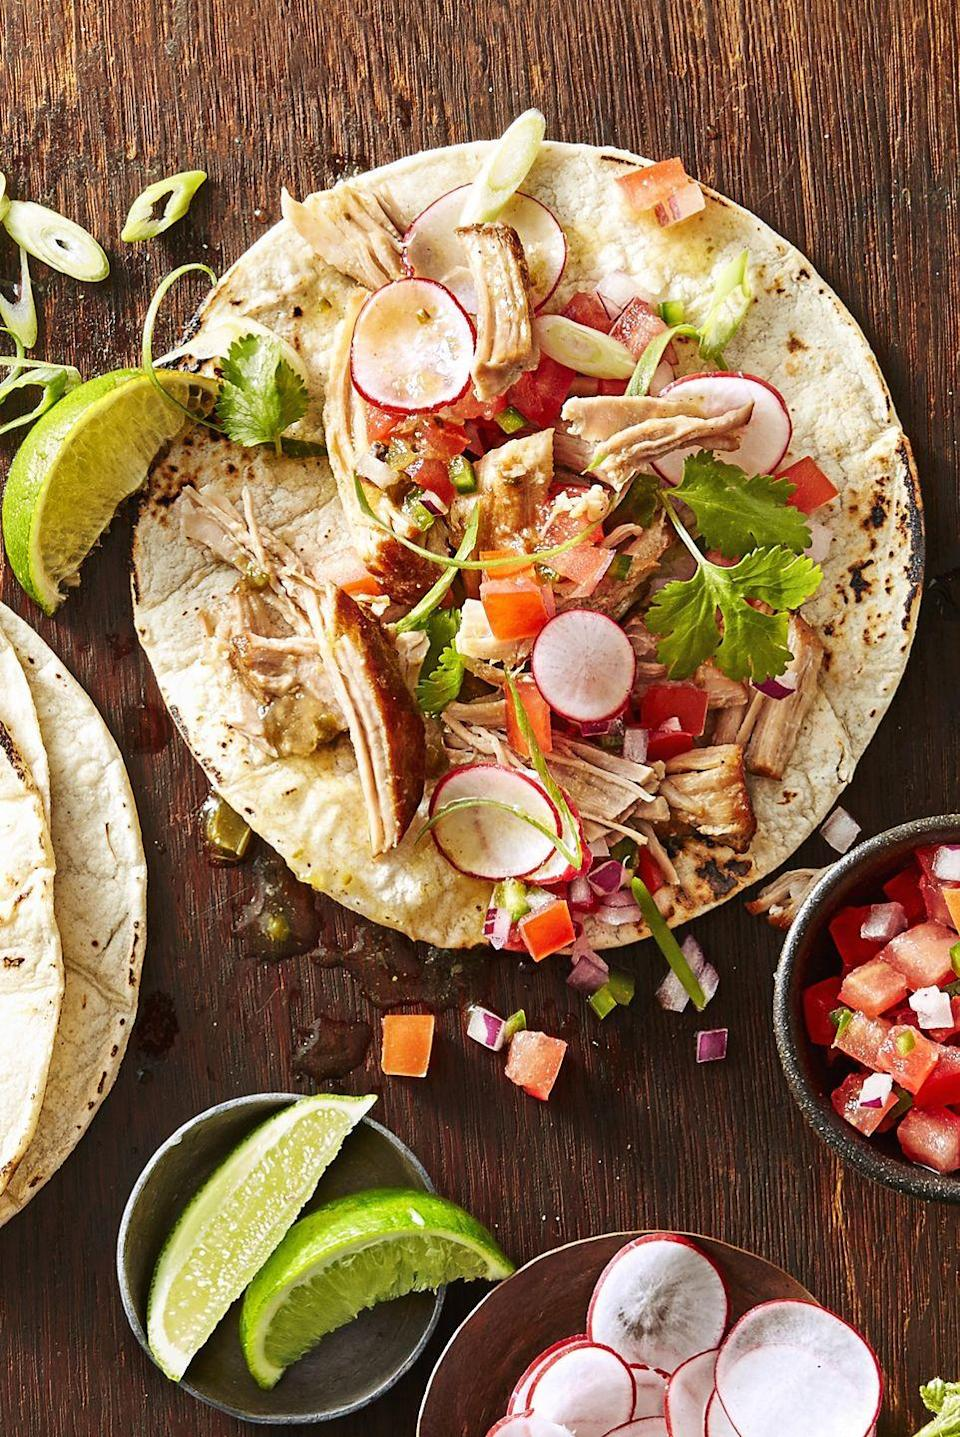 """<p>Pile on the toppings of your choice — radishes, tomatoes, onion, and more — to add <em>even </em>more flavor to these pork tacos. </p><p><em><a href=""""https://www.goodhousekeeping.com/food-recipes/a42403/carnitas-tacos-recipe/"""" rel=""""nofollow noopener"""" target=""""_blank"""" data-ylk=""""slk:Get the recipe for Carnitas Tacos »"""" class=""""link rapid-noclick-resp"""">Get the recipe for Carnitas Tacos »</a></em> </p>"""